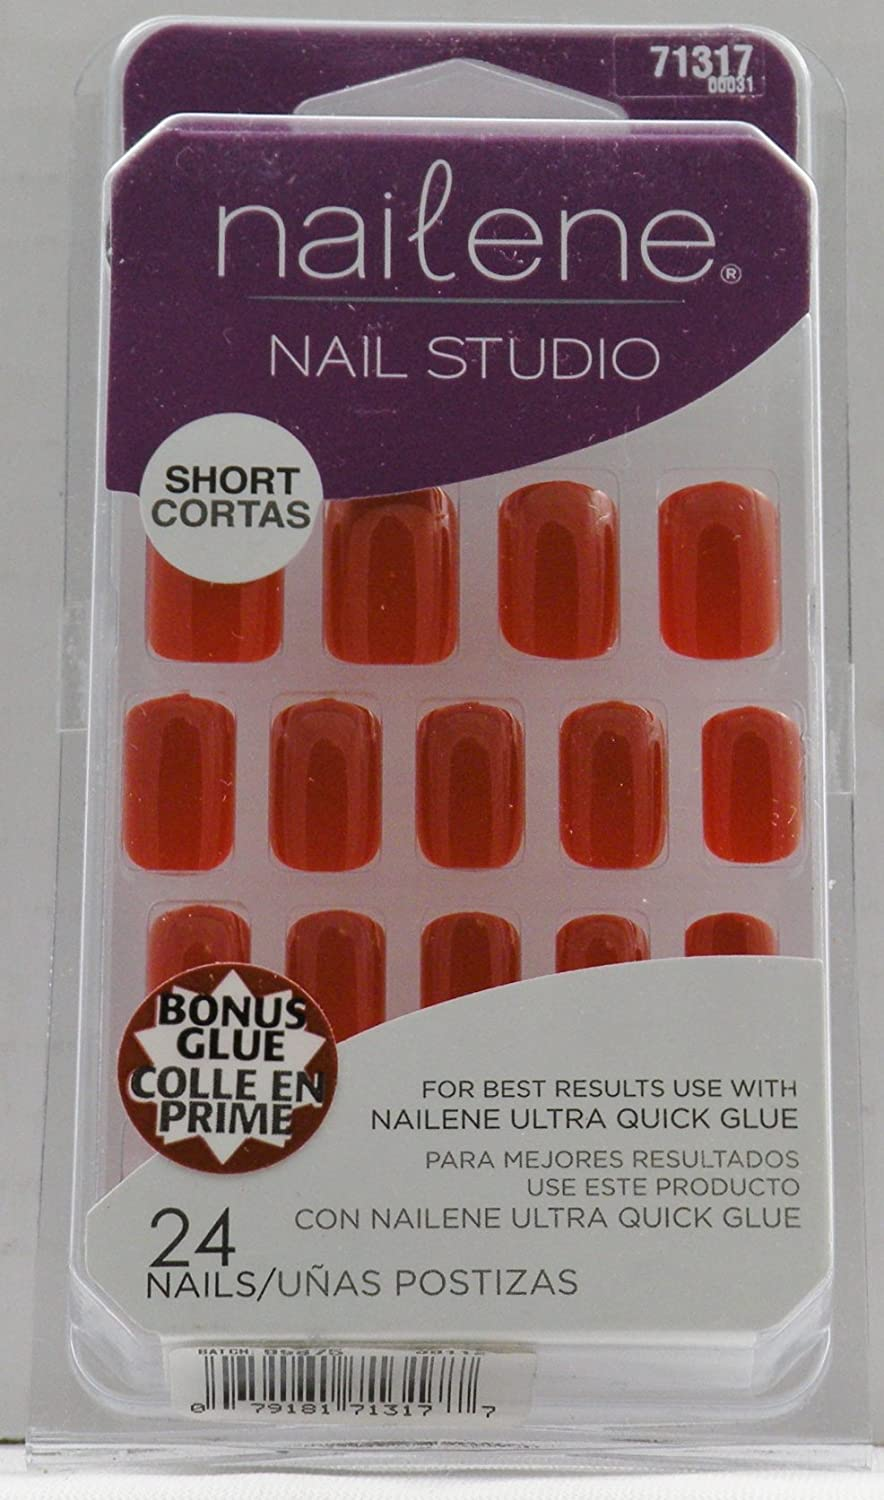 Amazon.com : Nailene Nail Studio Nails - Red (Short) 71317 : False Nails : Beauty